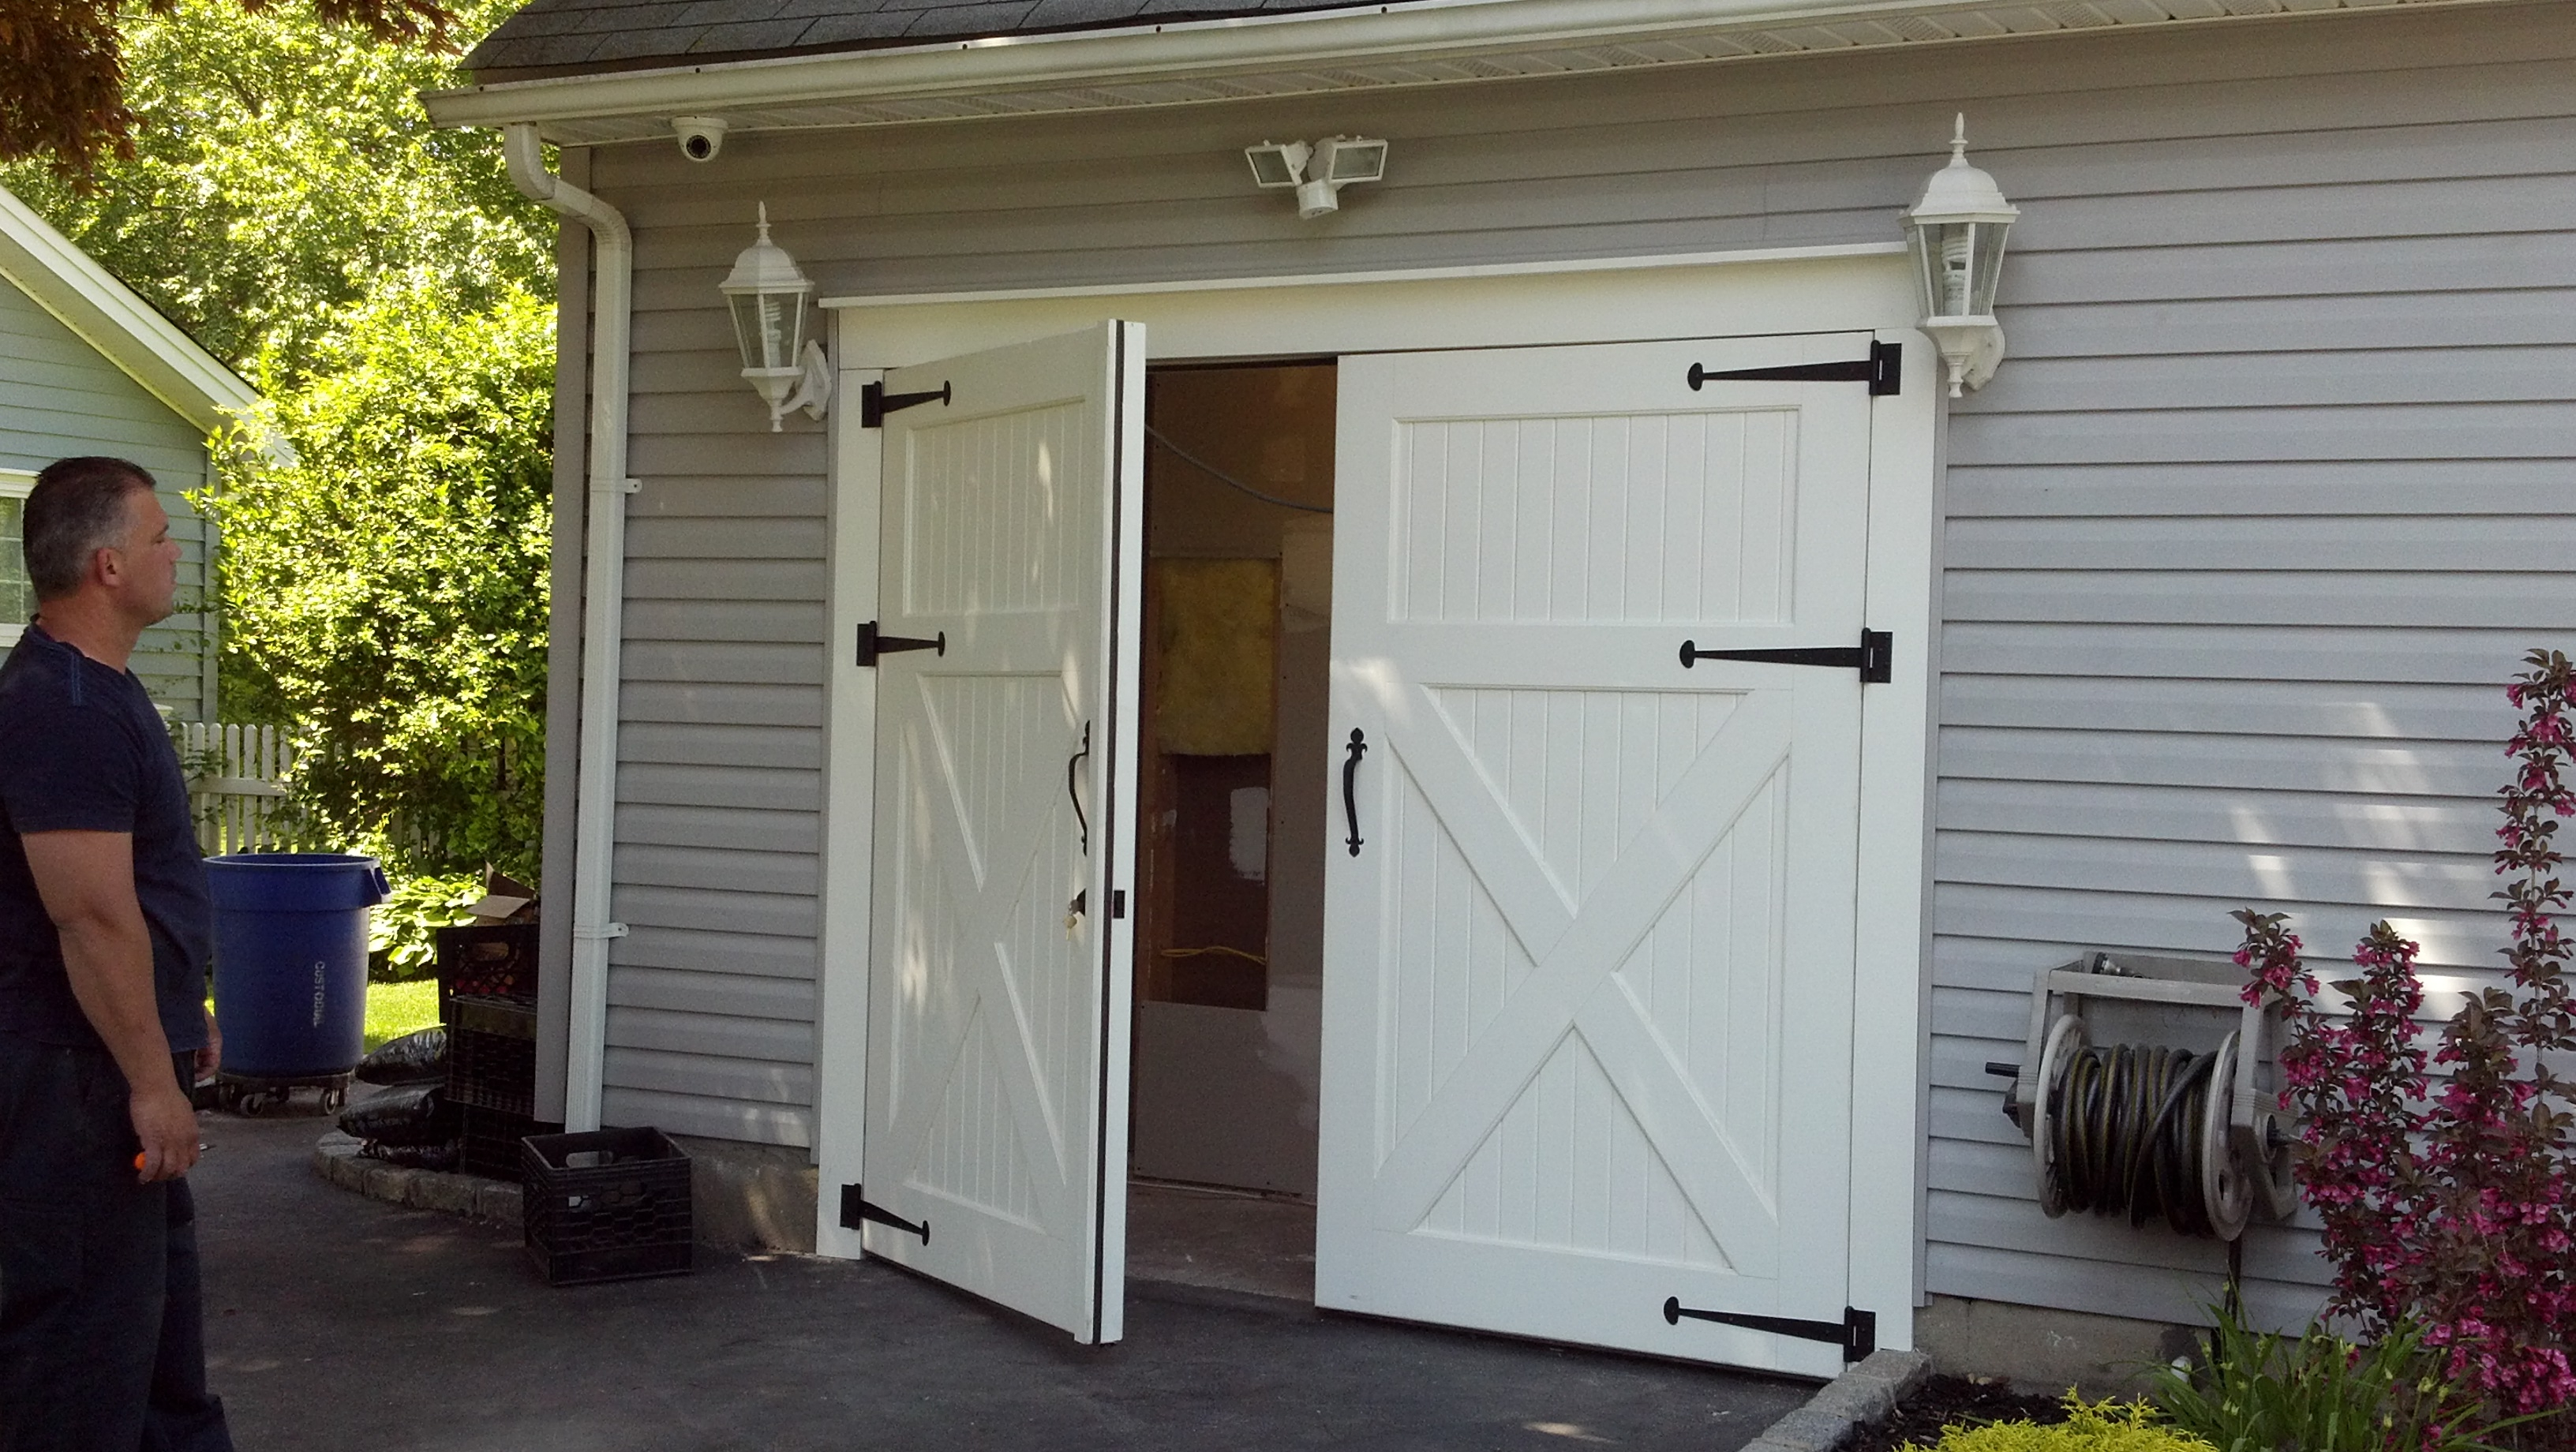 d frankston projects gallery img a of door mornington b garage doors and suppliers